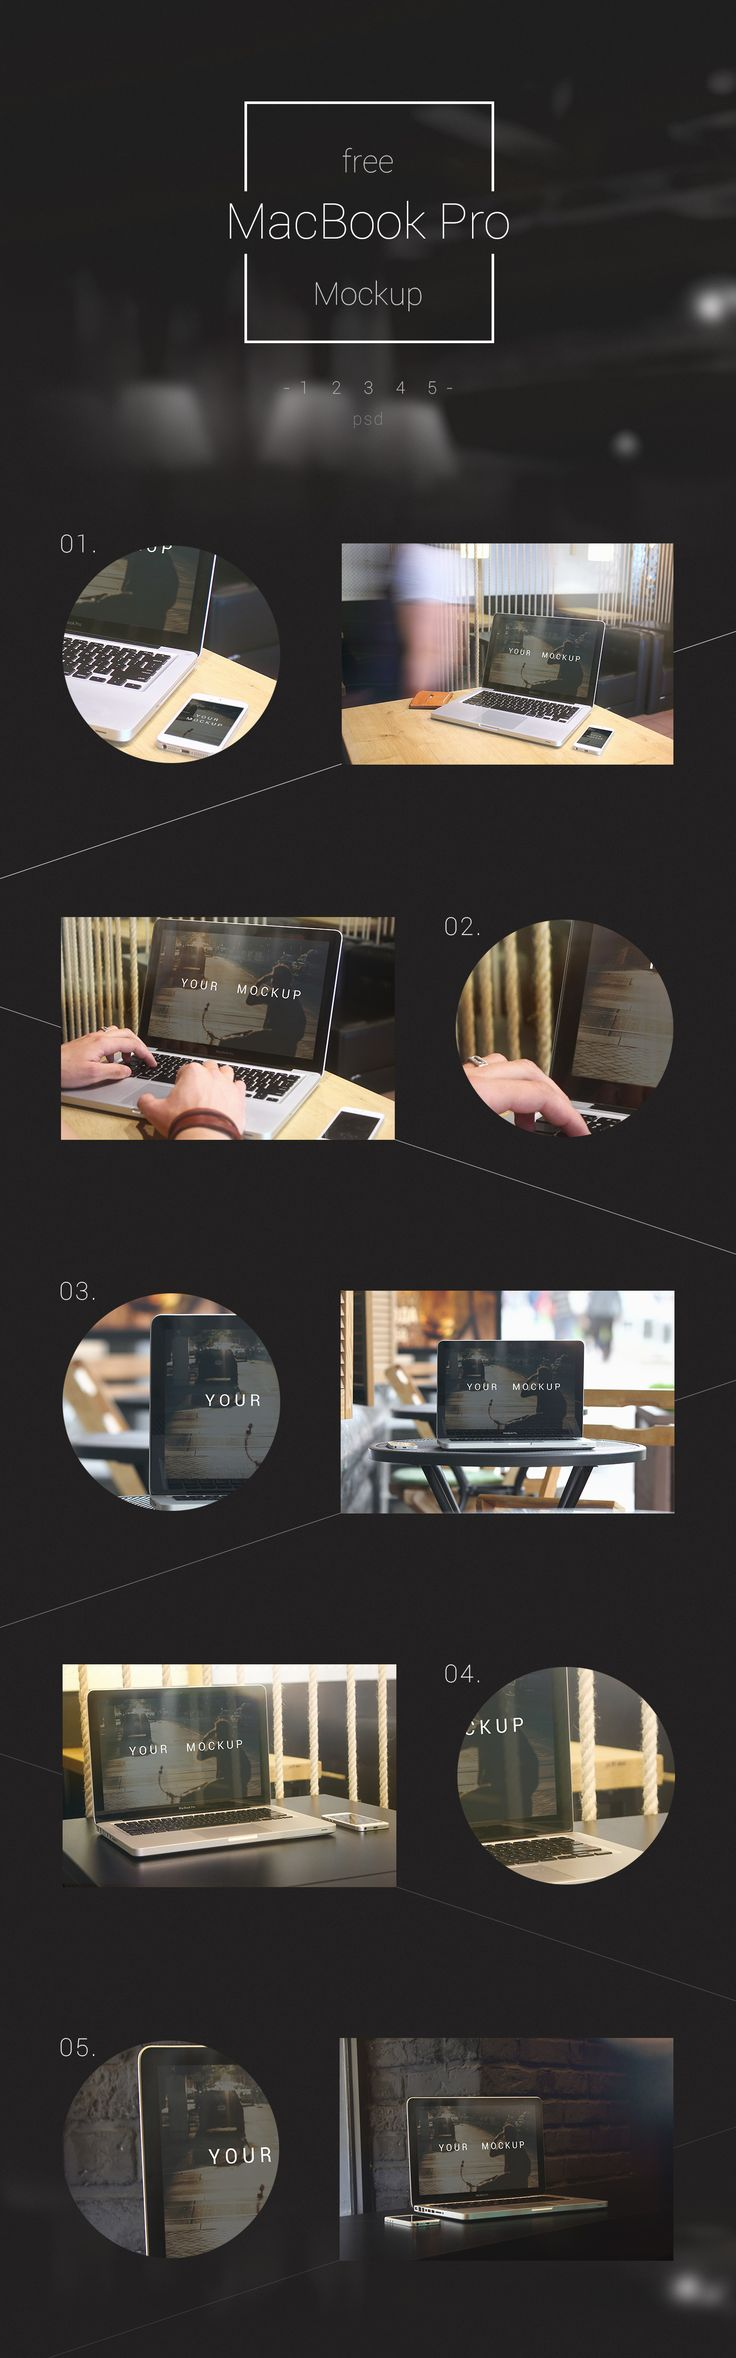 Free MacBooK Pro mockup download (123 MB) | On Behance